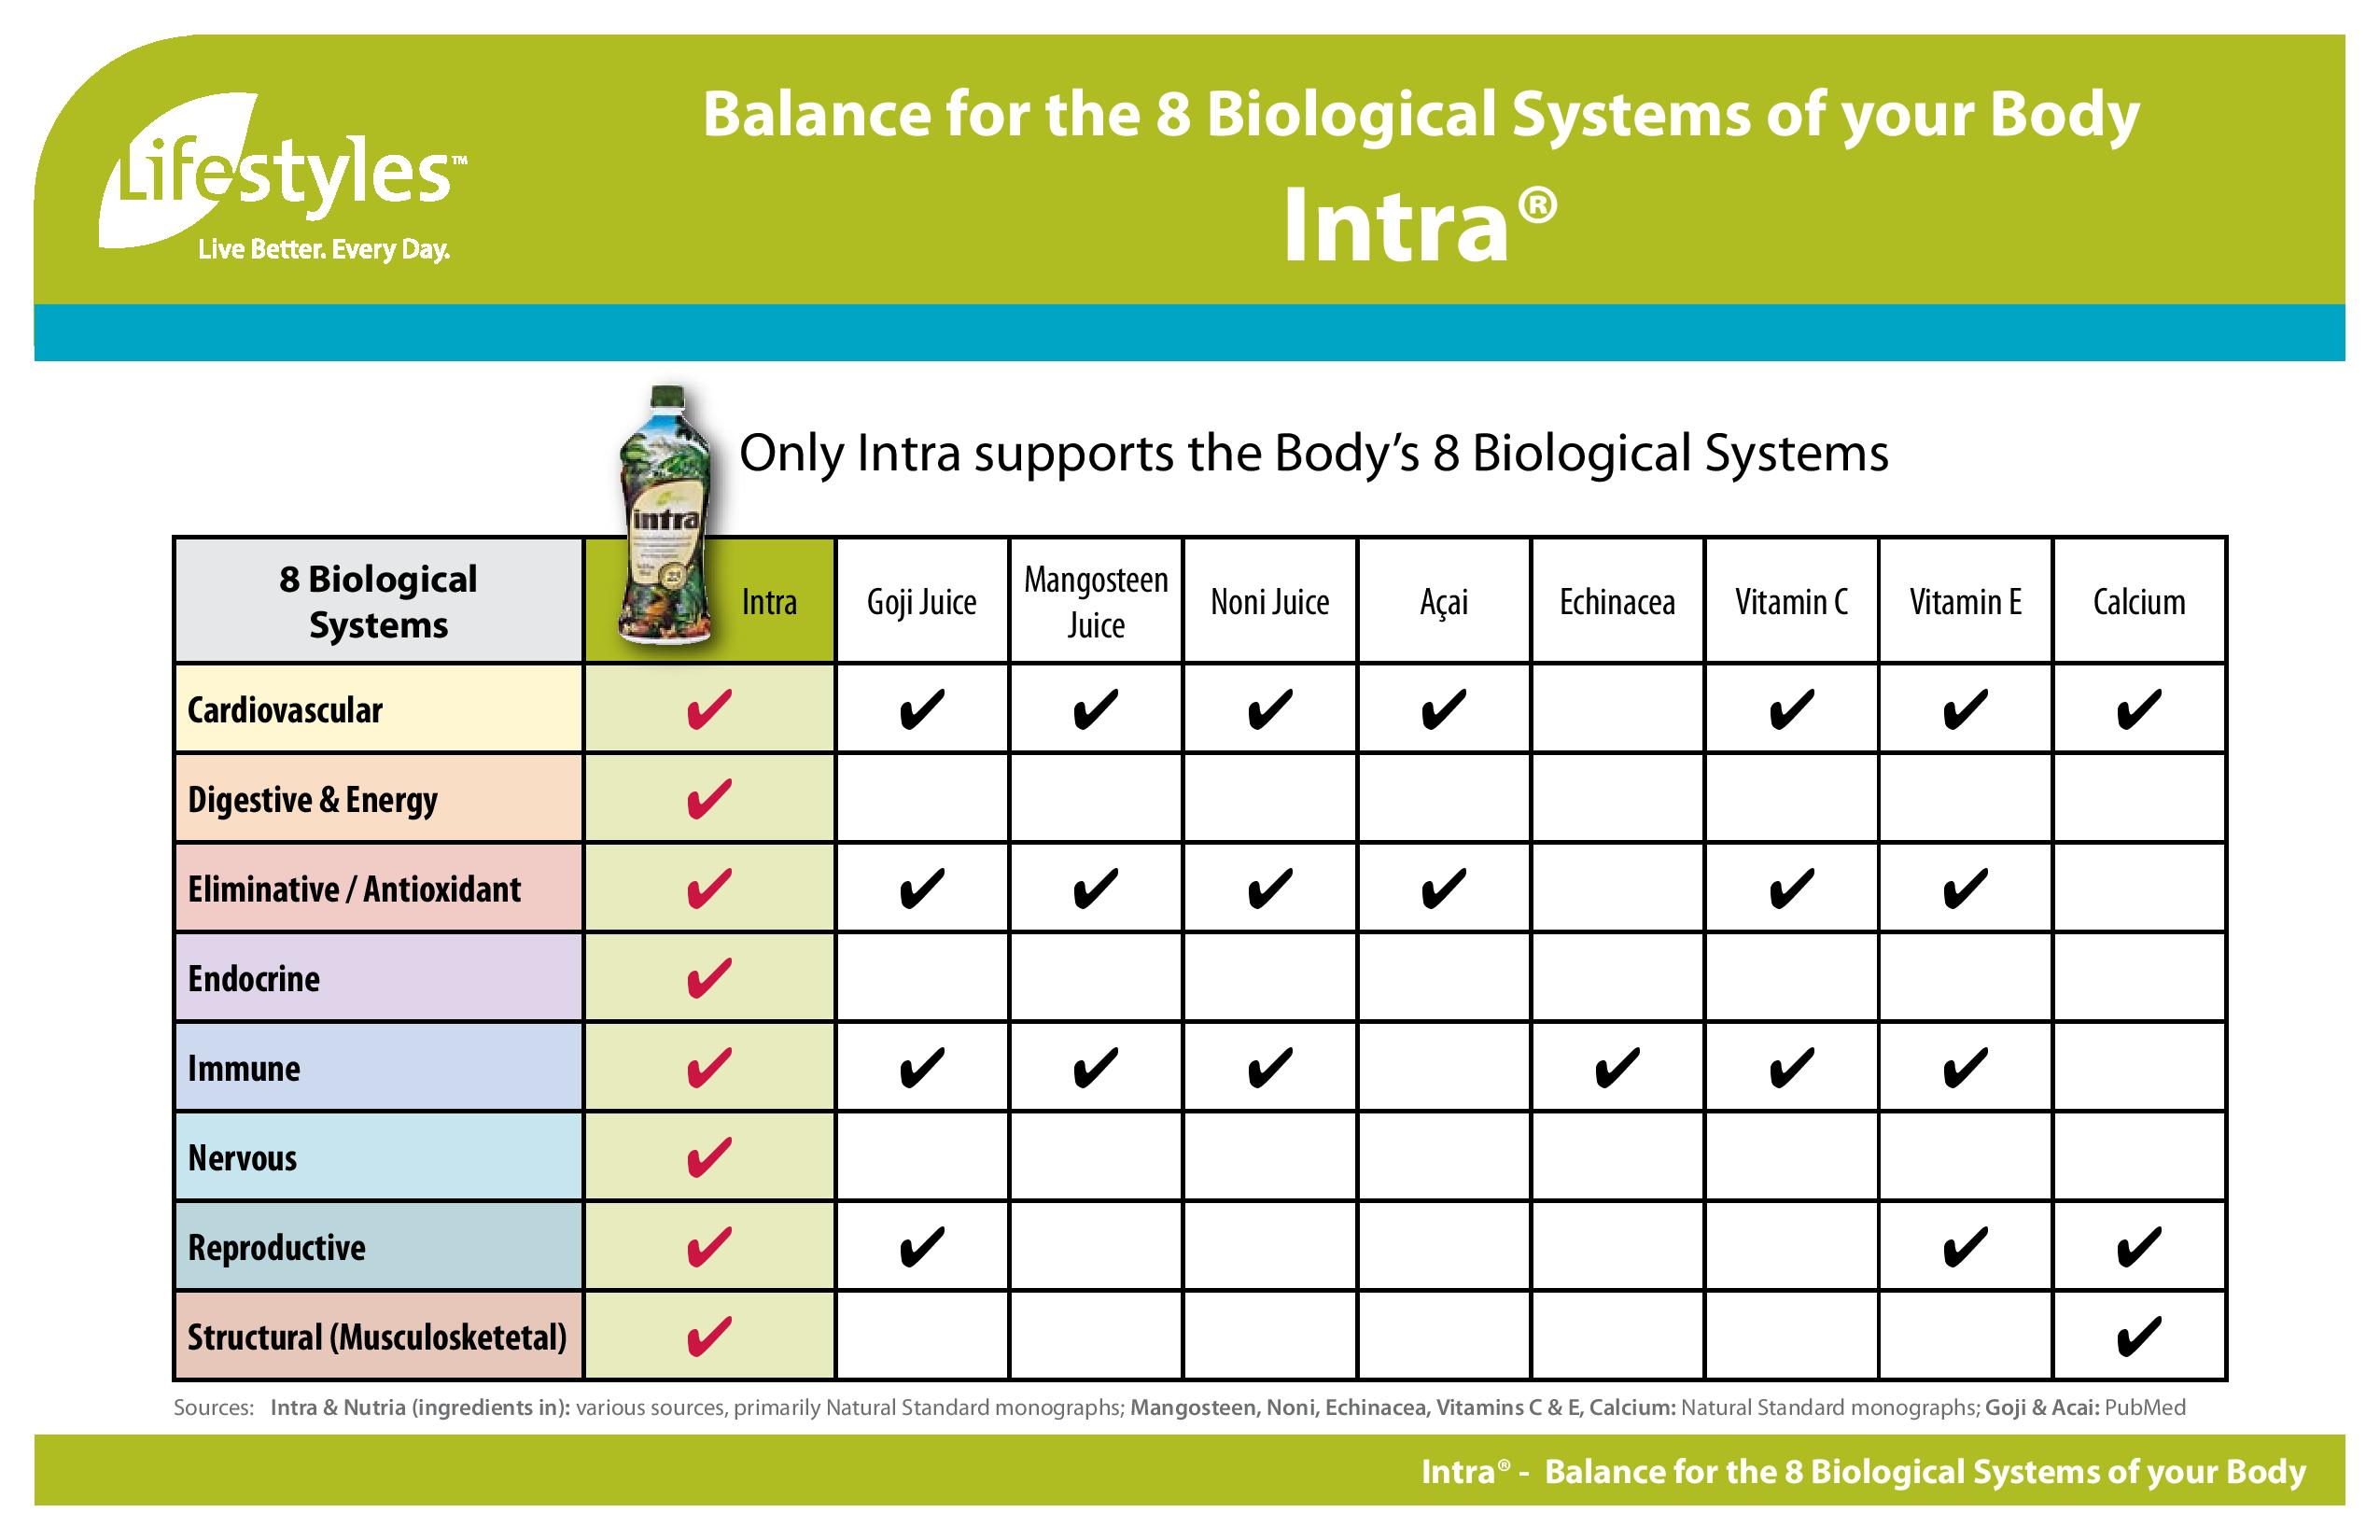 Intra Lifestyles Biological